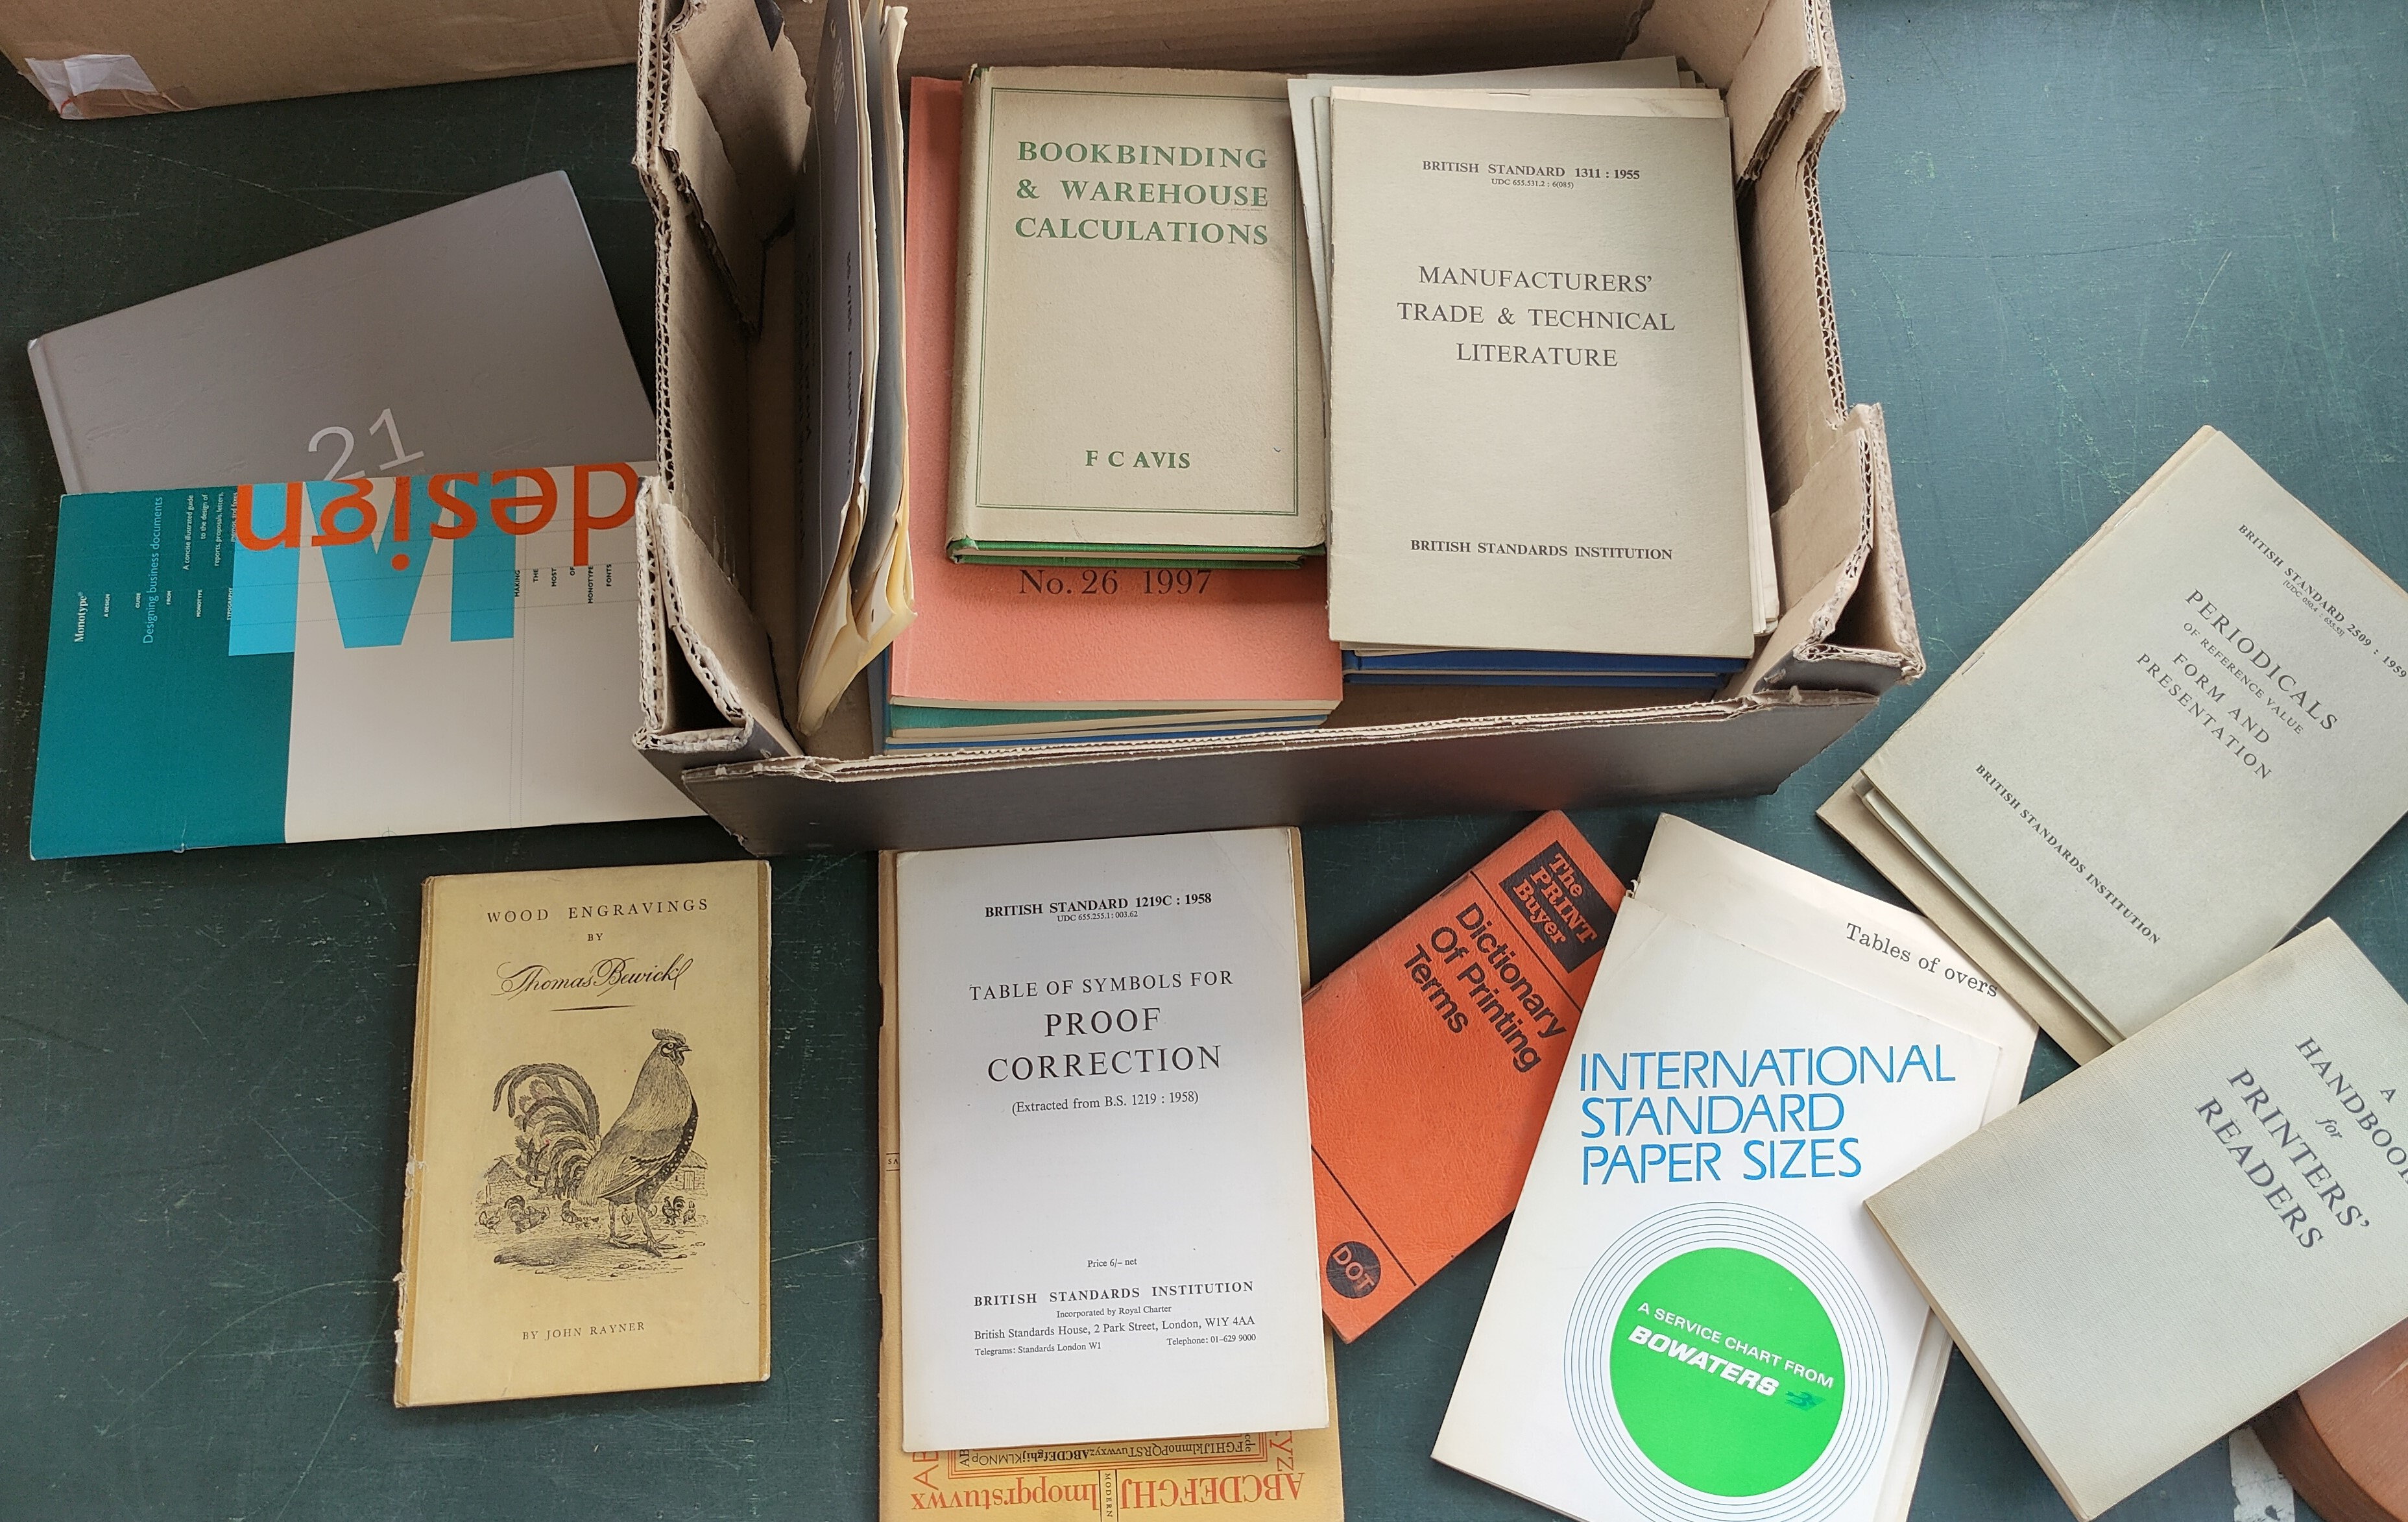 A selection of books and pamphlets on printing and the printing trade